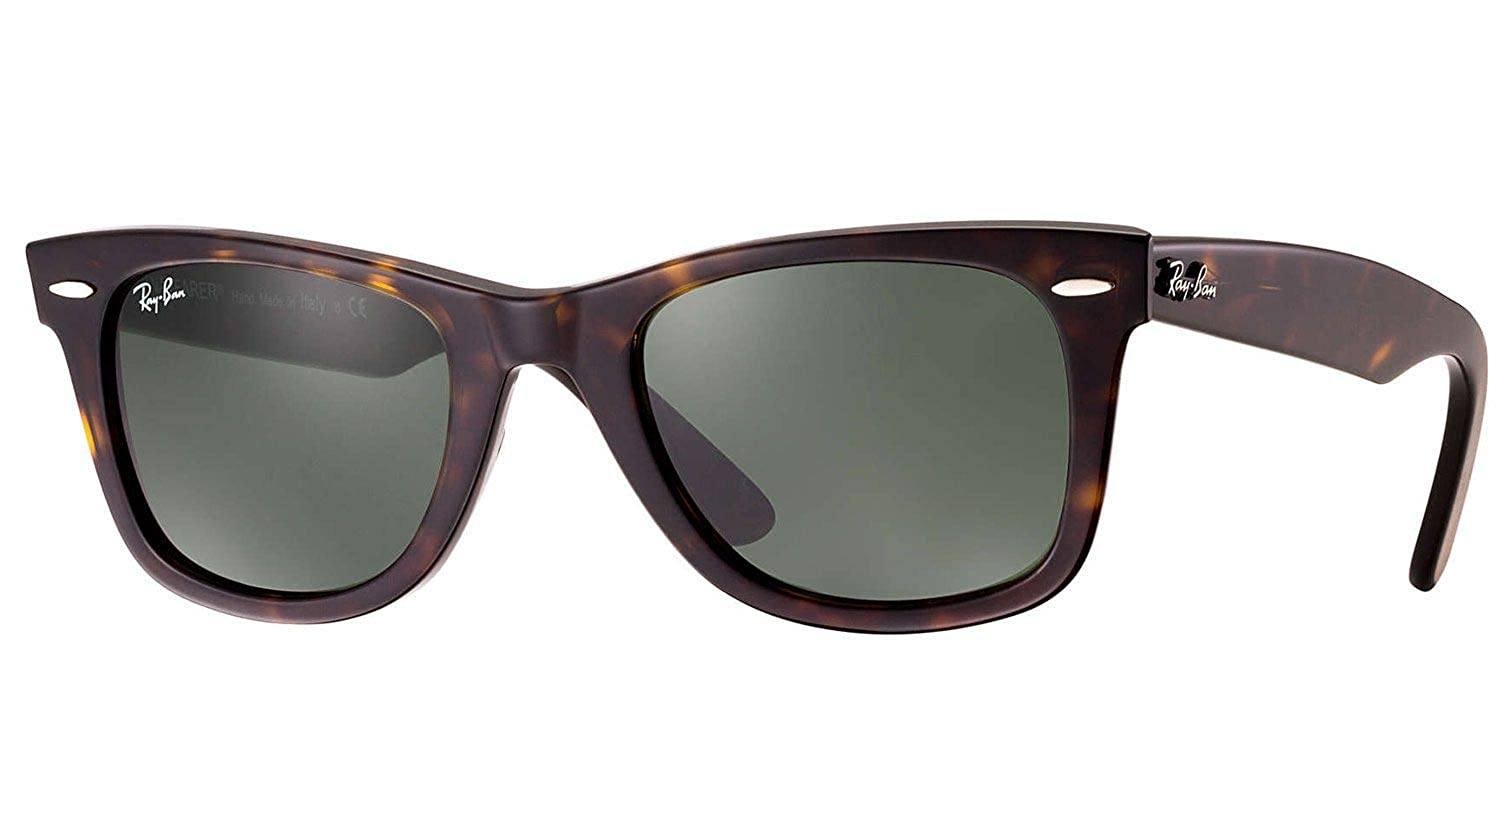 e9c189762548a Amazon.com  New Ray Ban RB2140 902 Wayfarer Tortoise Frame Crystal Green  Lens 54mm Sunglasses  Shoes